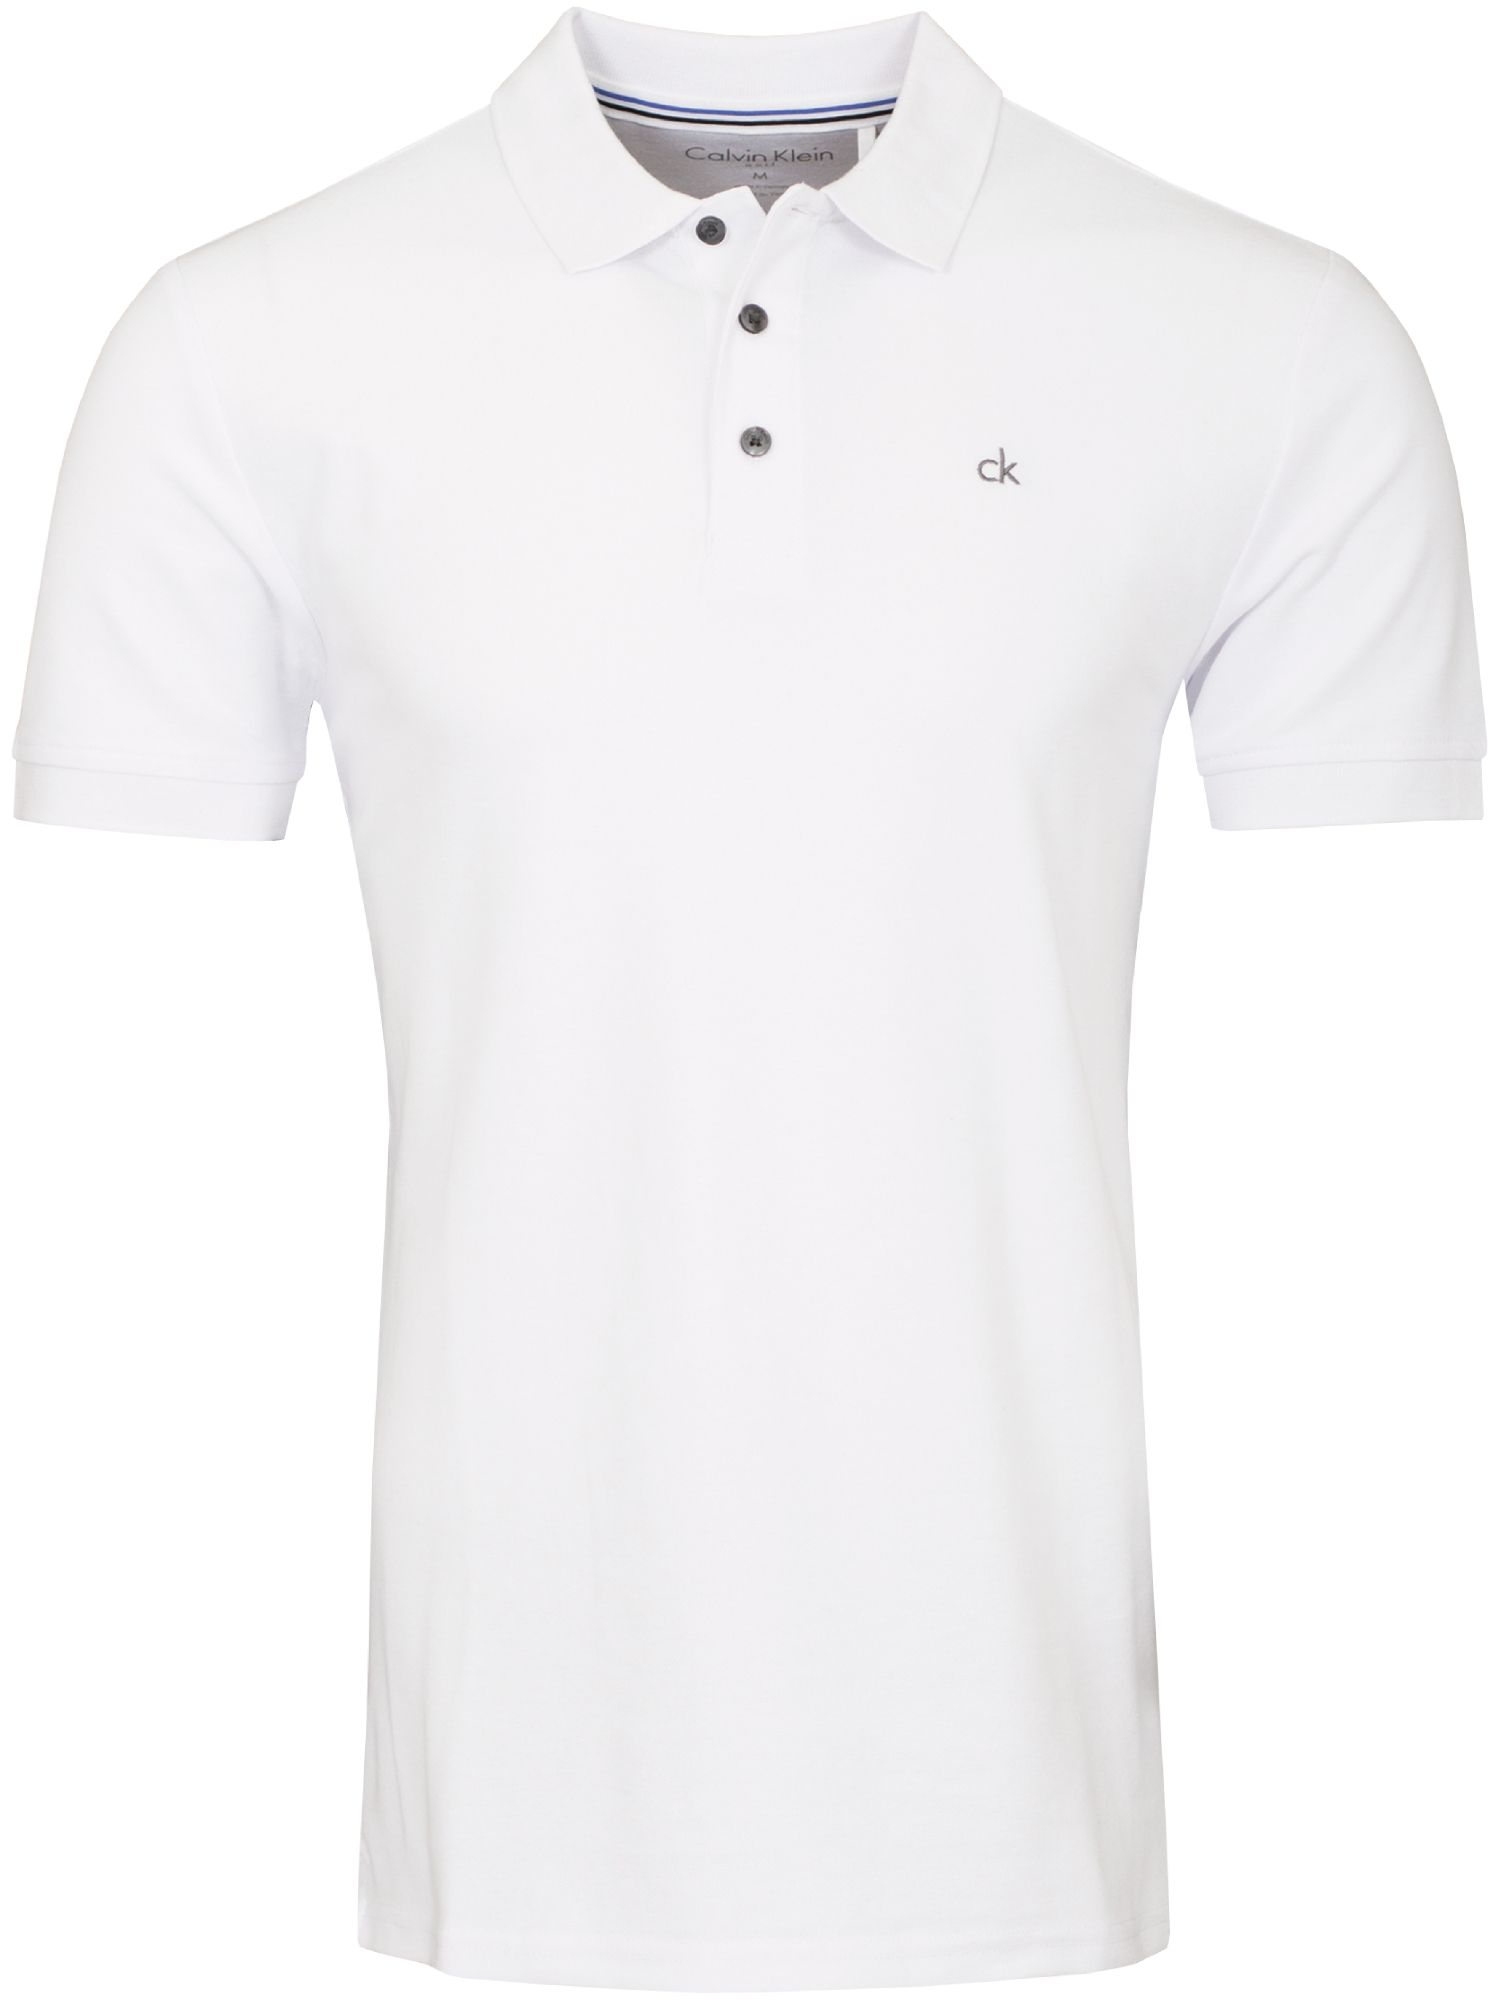 Men's Calvin Klein Golf Midtown Radical Cotton Polo, White